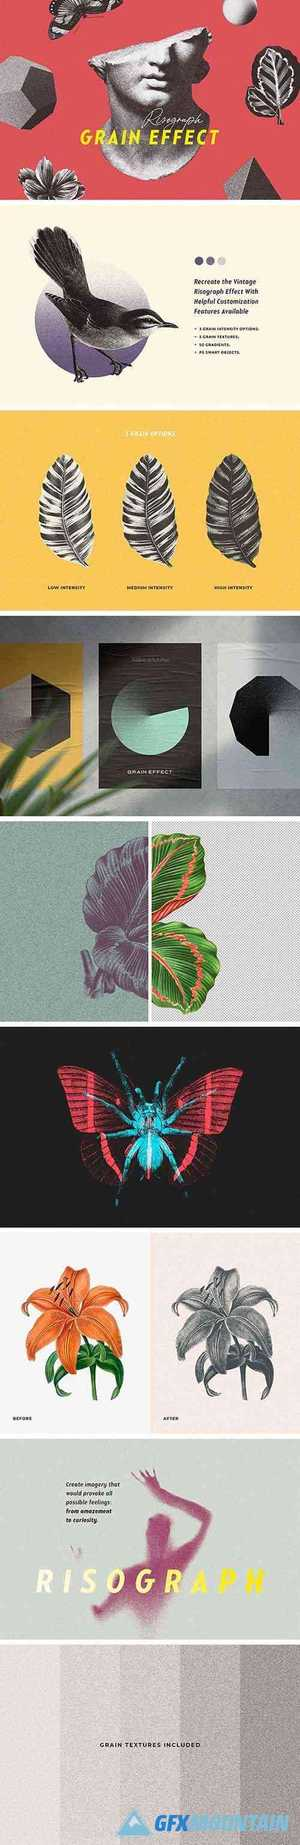 Risograph Grain Effect for Photoshop 28889897